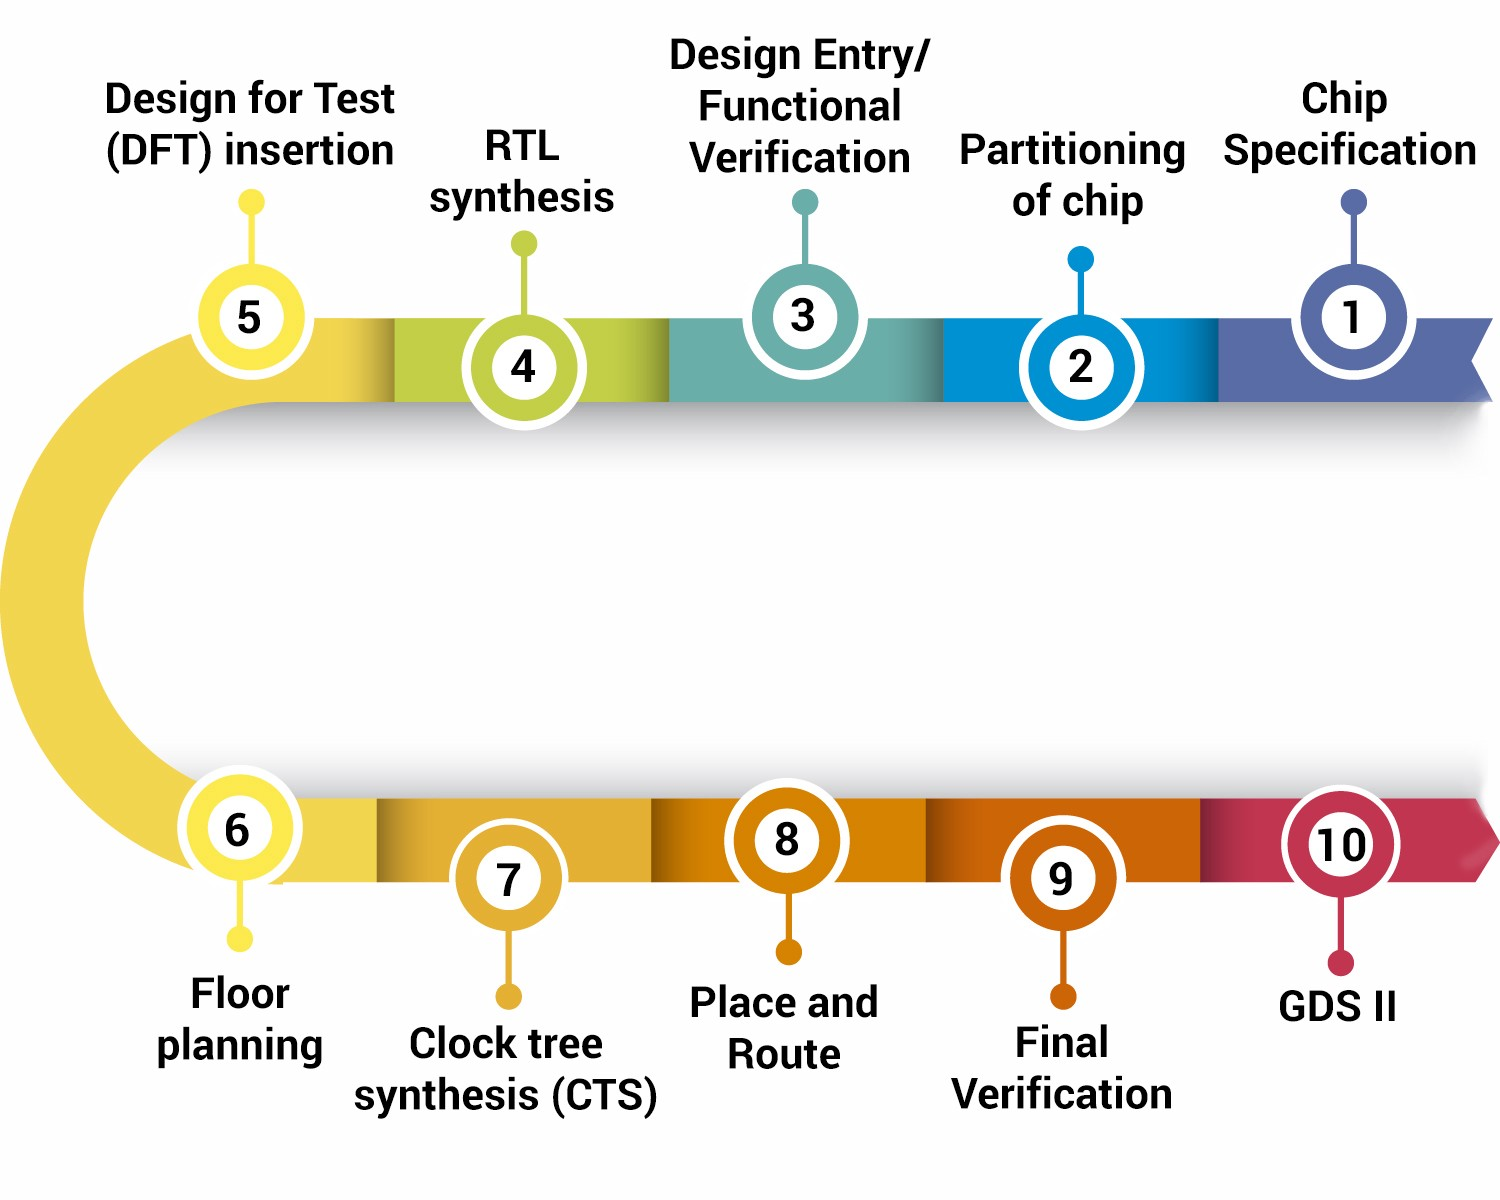 Asic Design Flow In Vlsi Engineering Services A Quick Guide By Einfochips An Arrow Company Medium